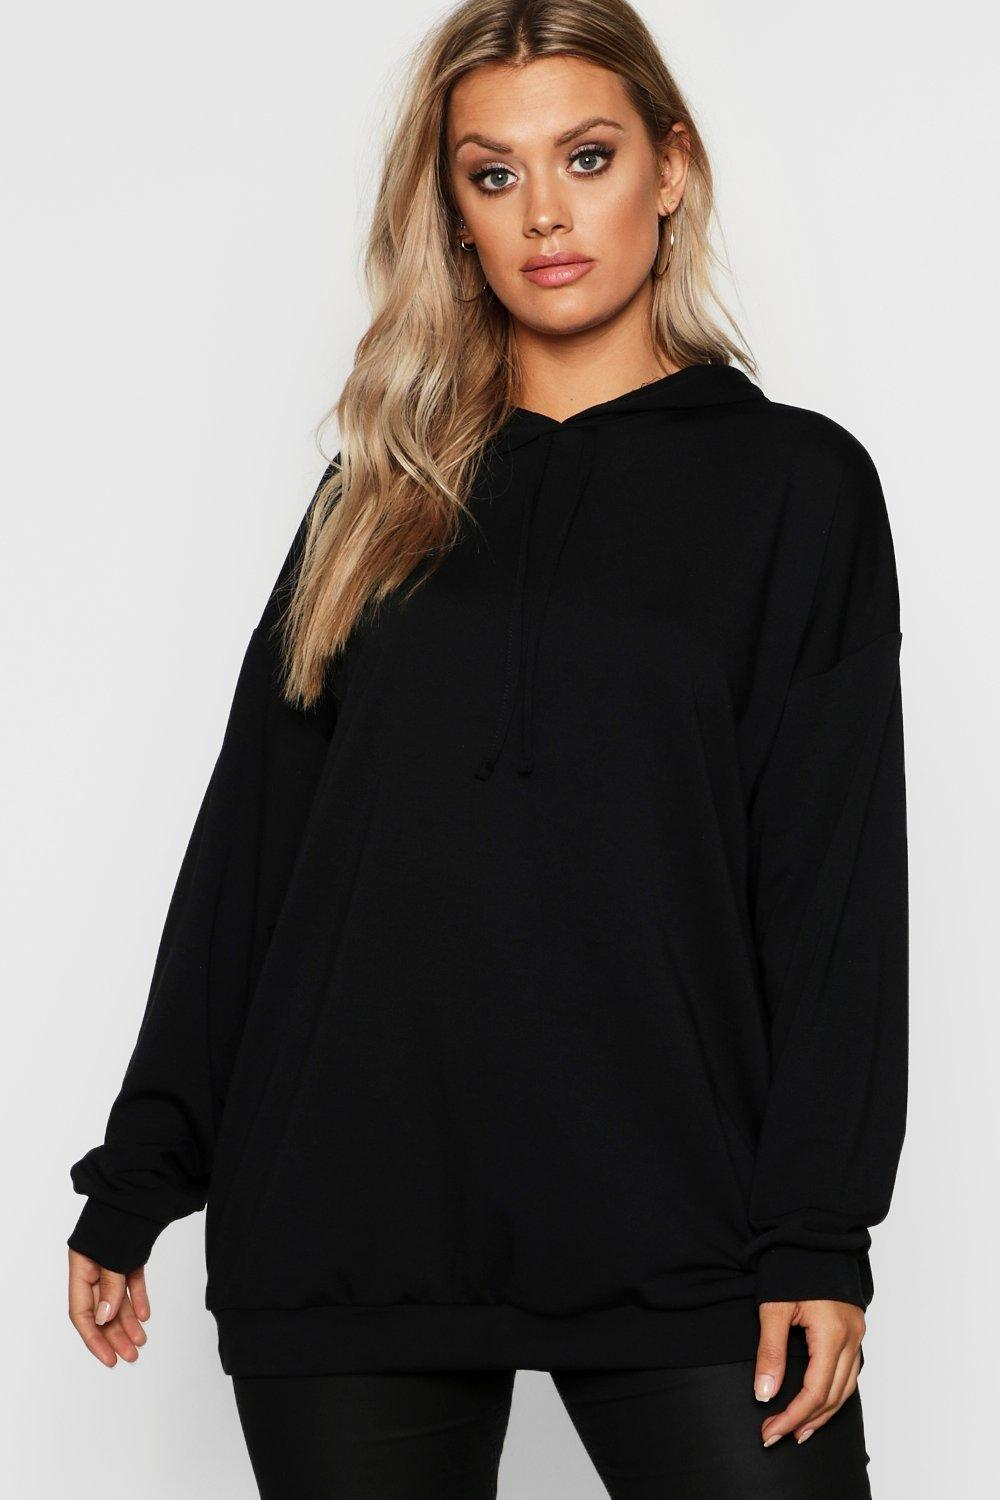 boohoo Womens Plus Oversized Hoody - Black - 16, Black